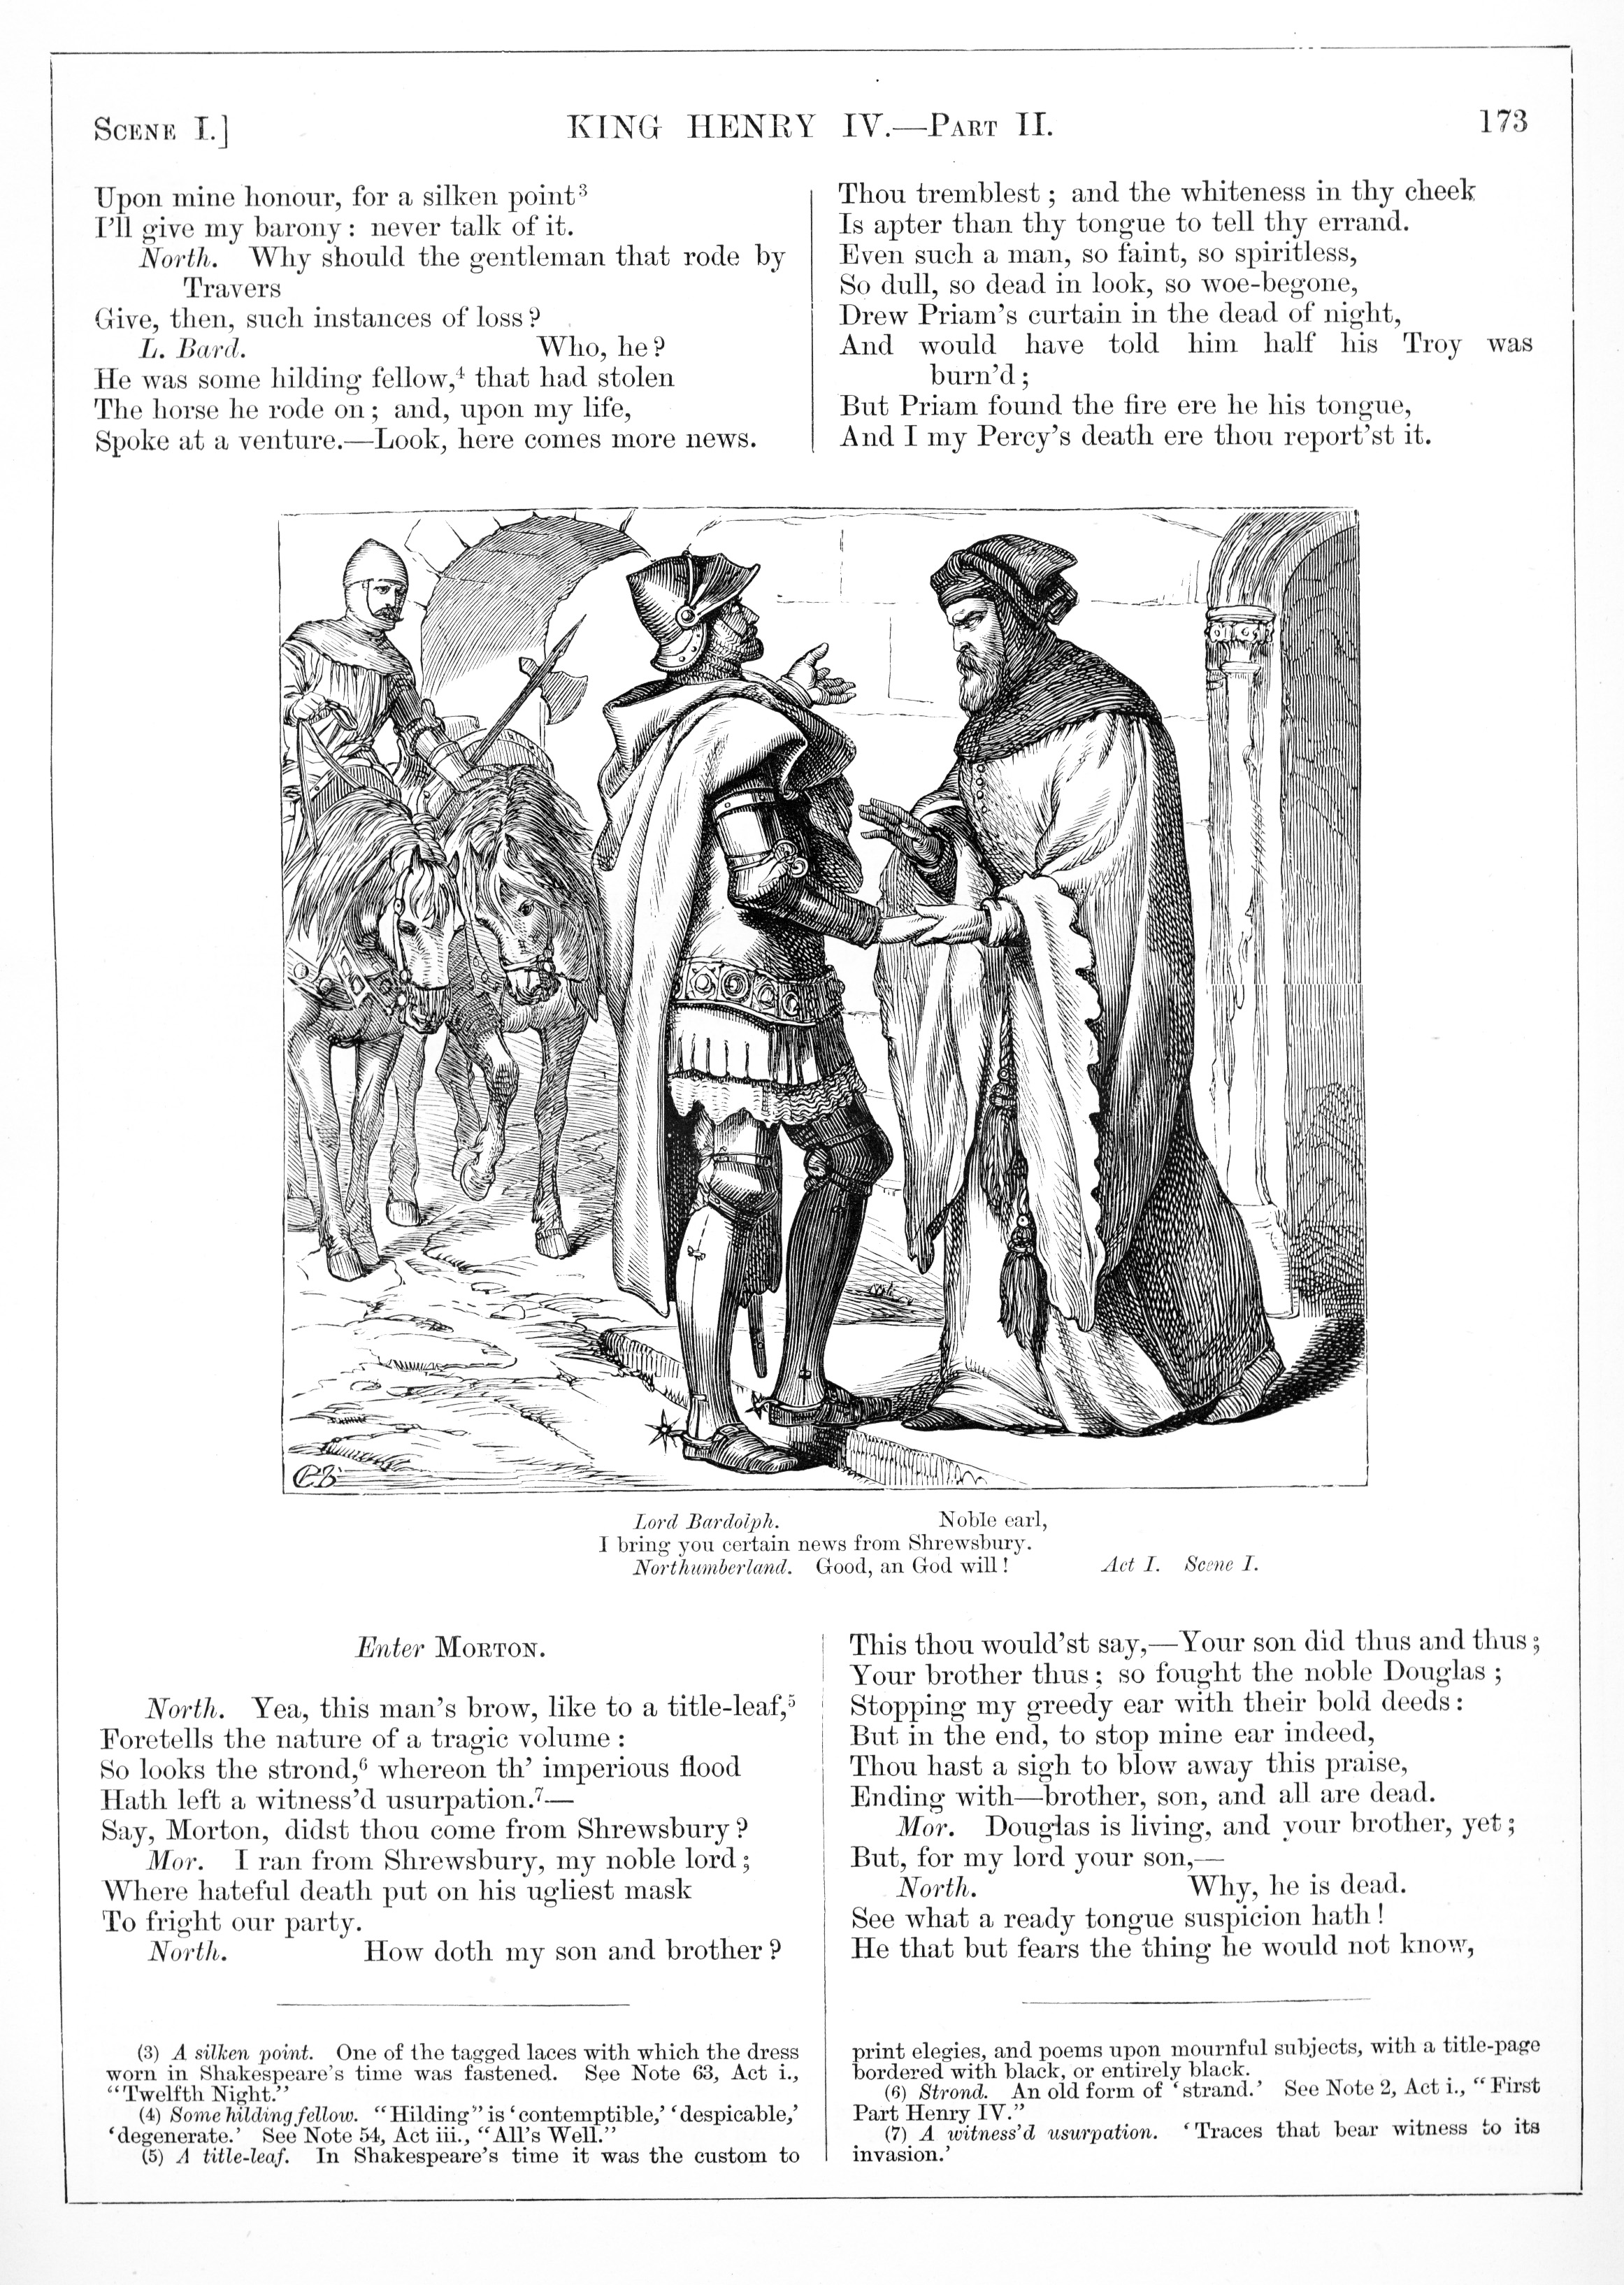 H. C. Selous, King Henry IV Part II, Illustration #3